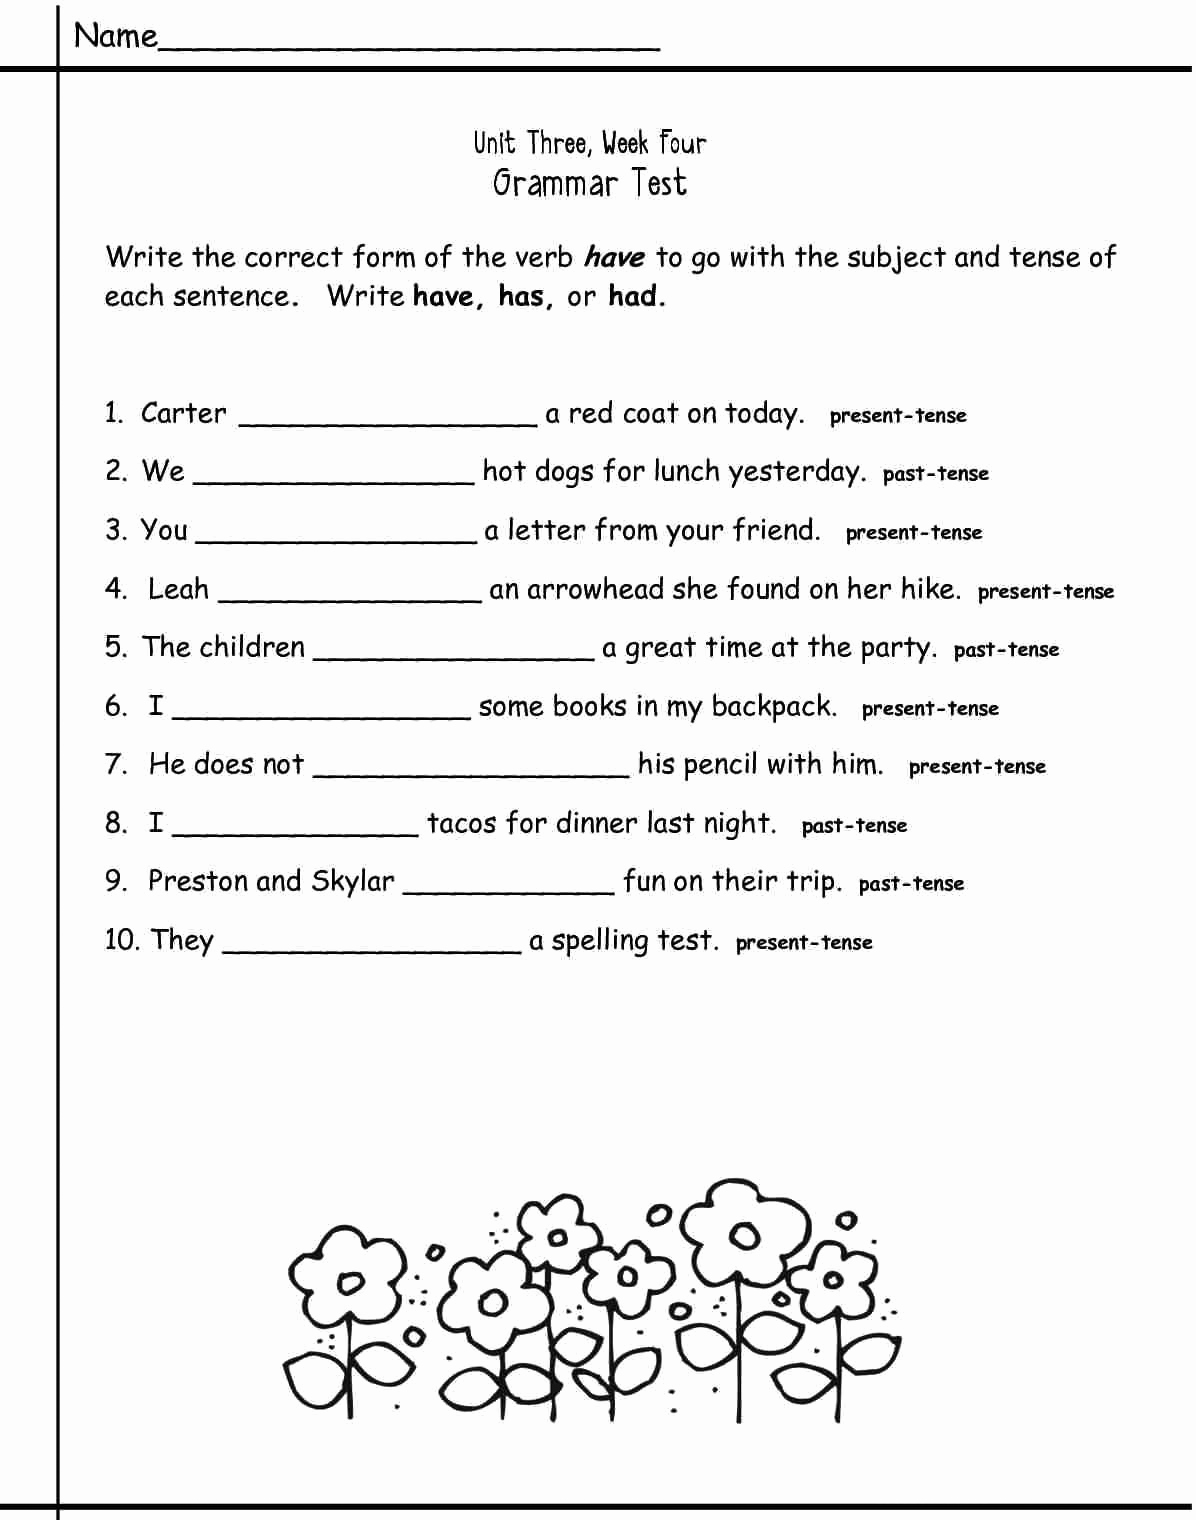 Proofreading Worksheets 3rd Grade Awesome 3rd Grade Worksheets Best Coloring Pages for Kids